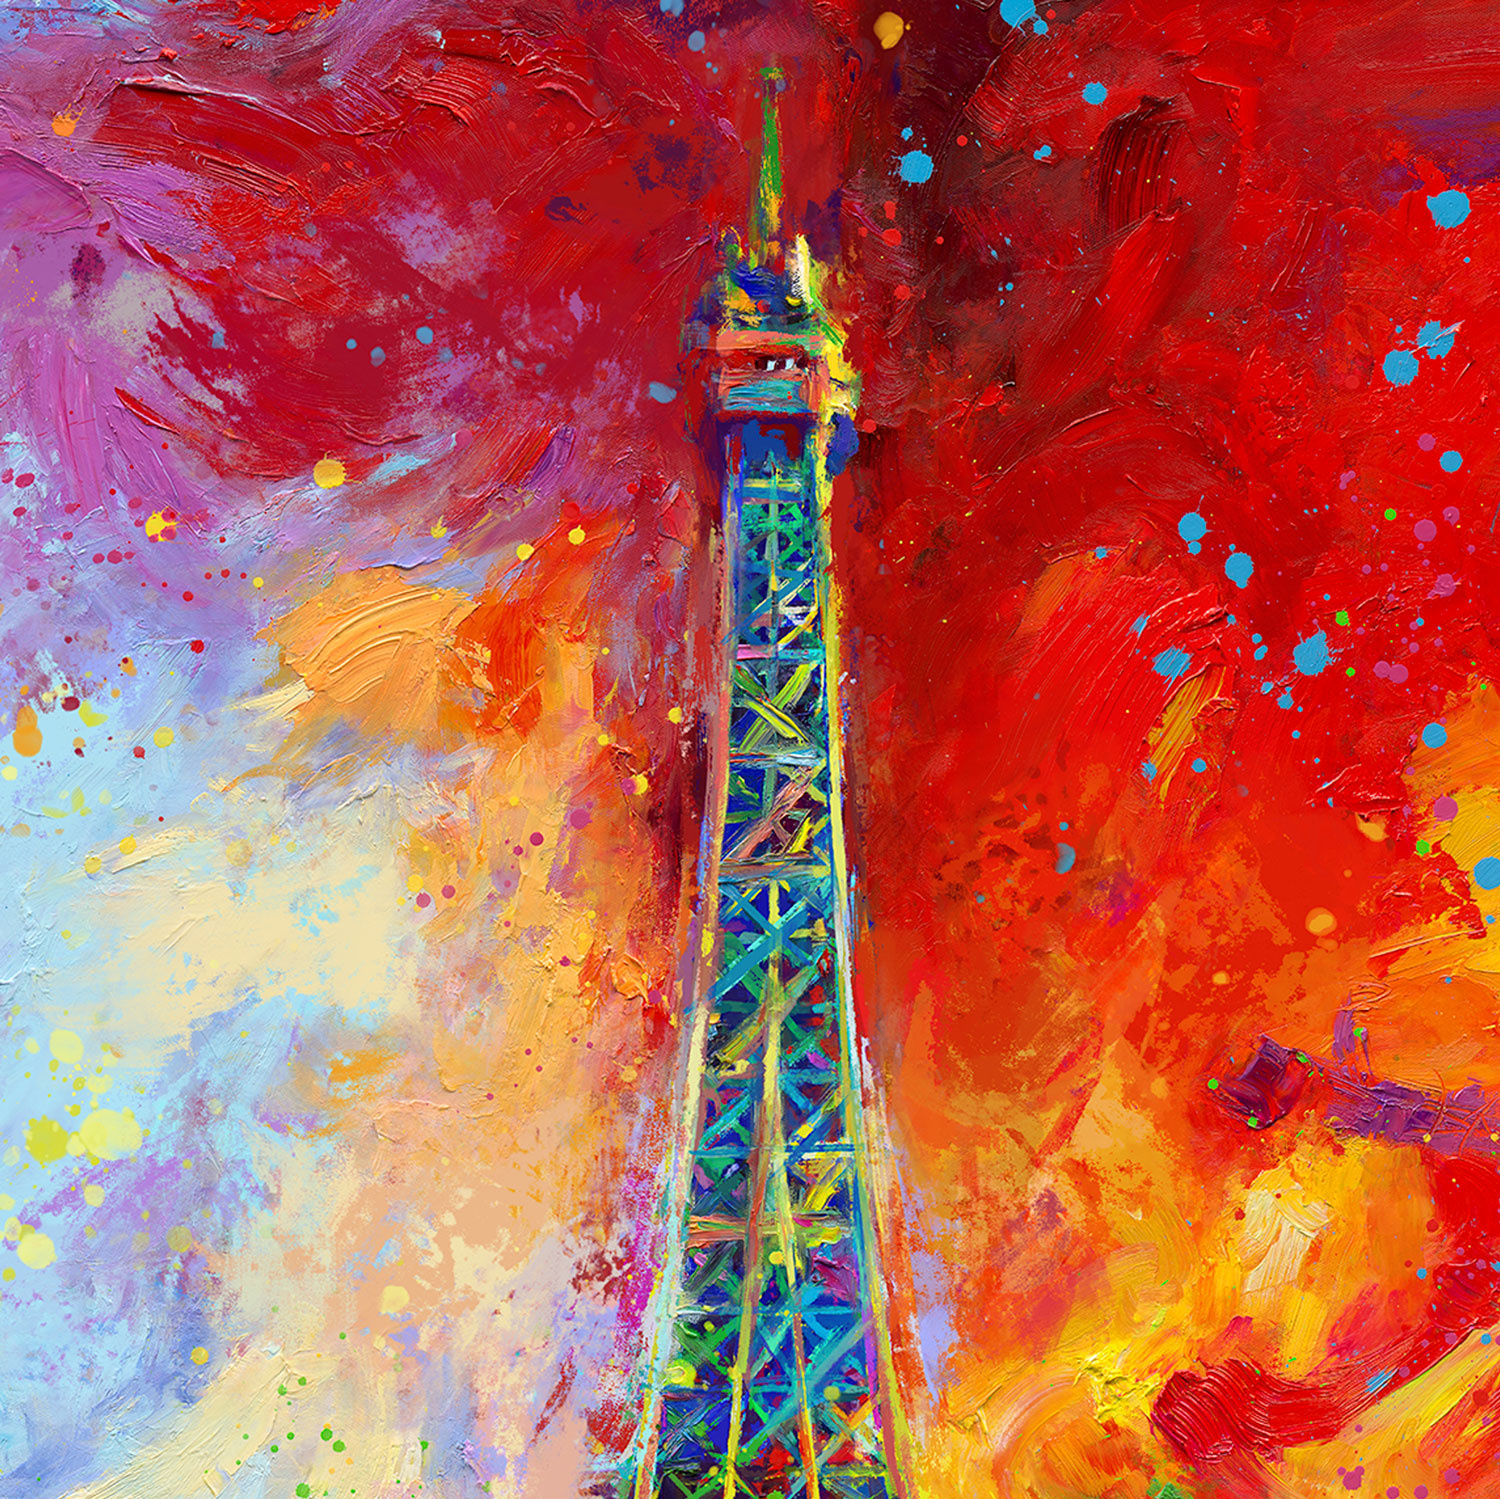 Paris Eiffel Tower by Artist Blend Cota 14 x 11 Gallery Wrapped Canvas